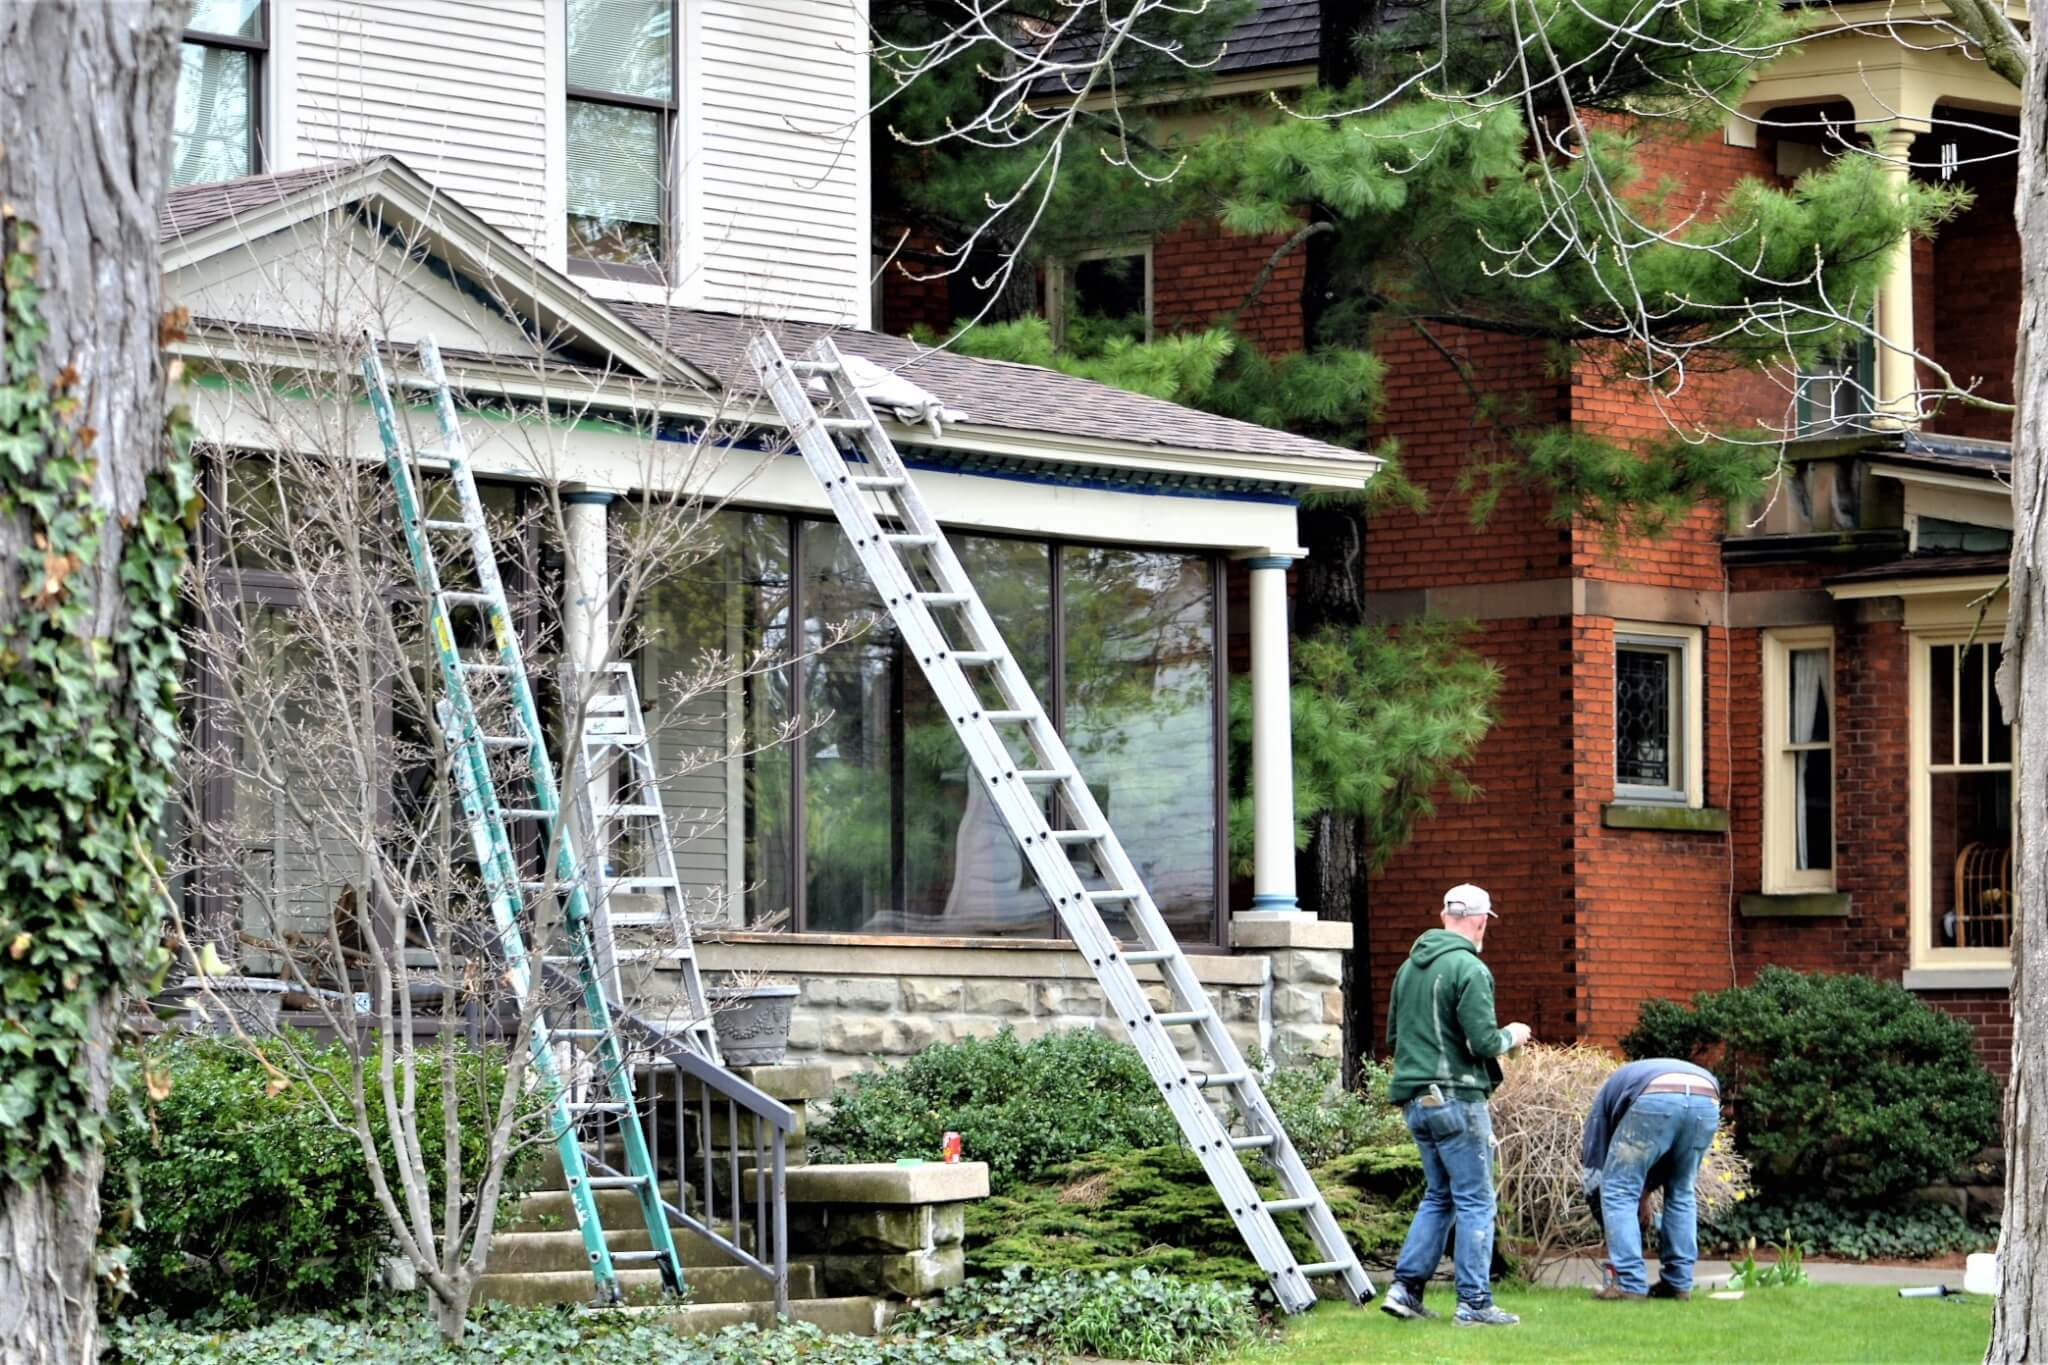 8 Home Maintenance Tasks To Do Every Year Or It'll Cost You | HerMoney